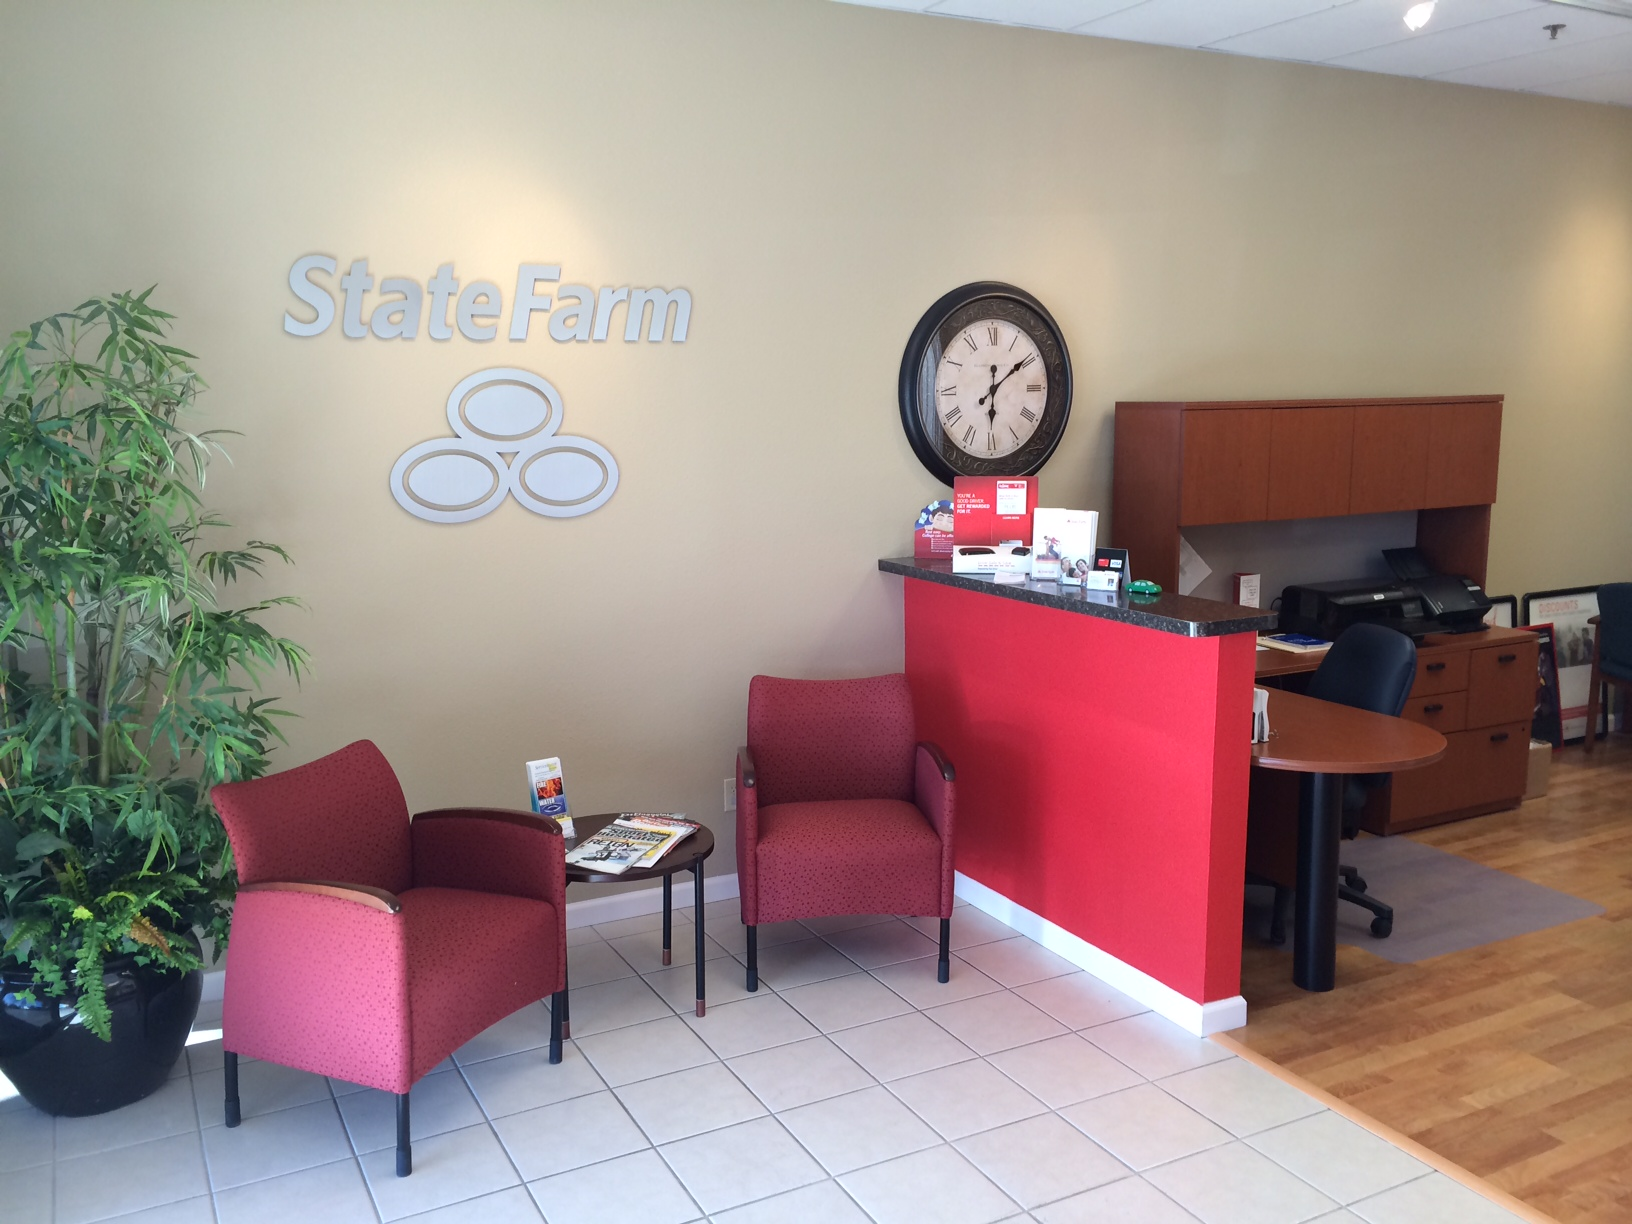 Kurt sieve state farm agent for Interior design hiring agency